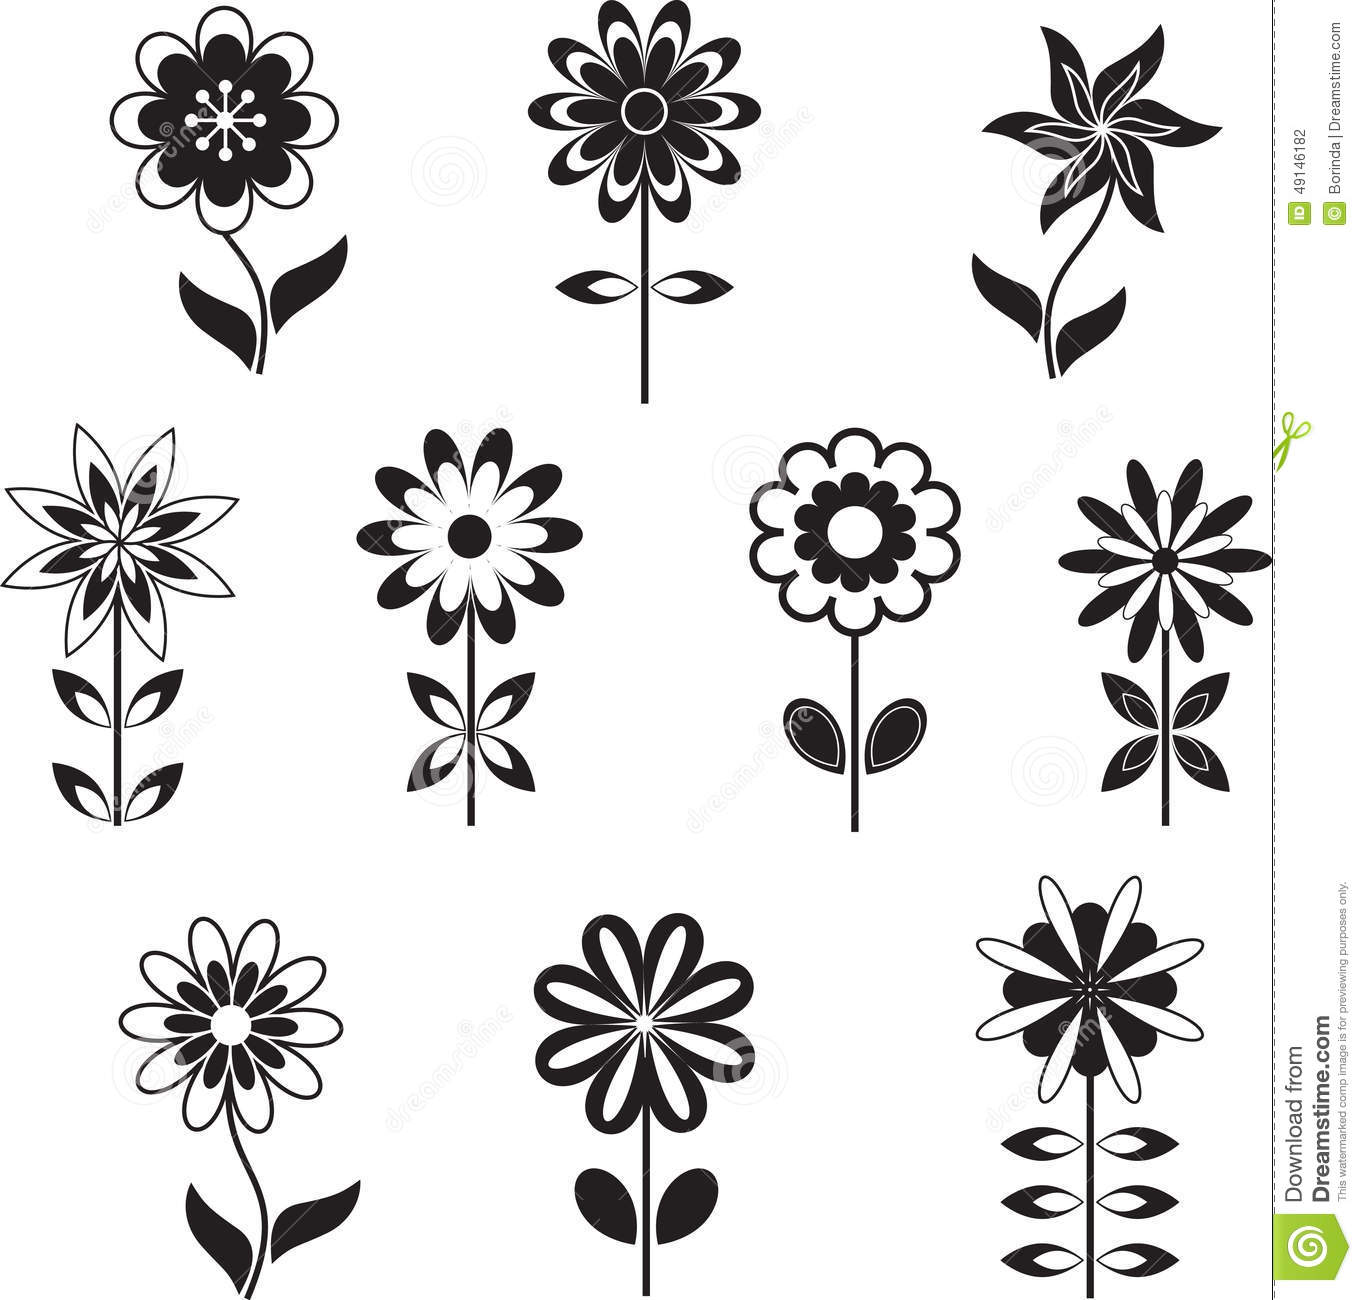 Isolated Black And White Flower Illustrations Stock Photo Image Of